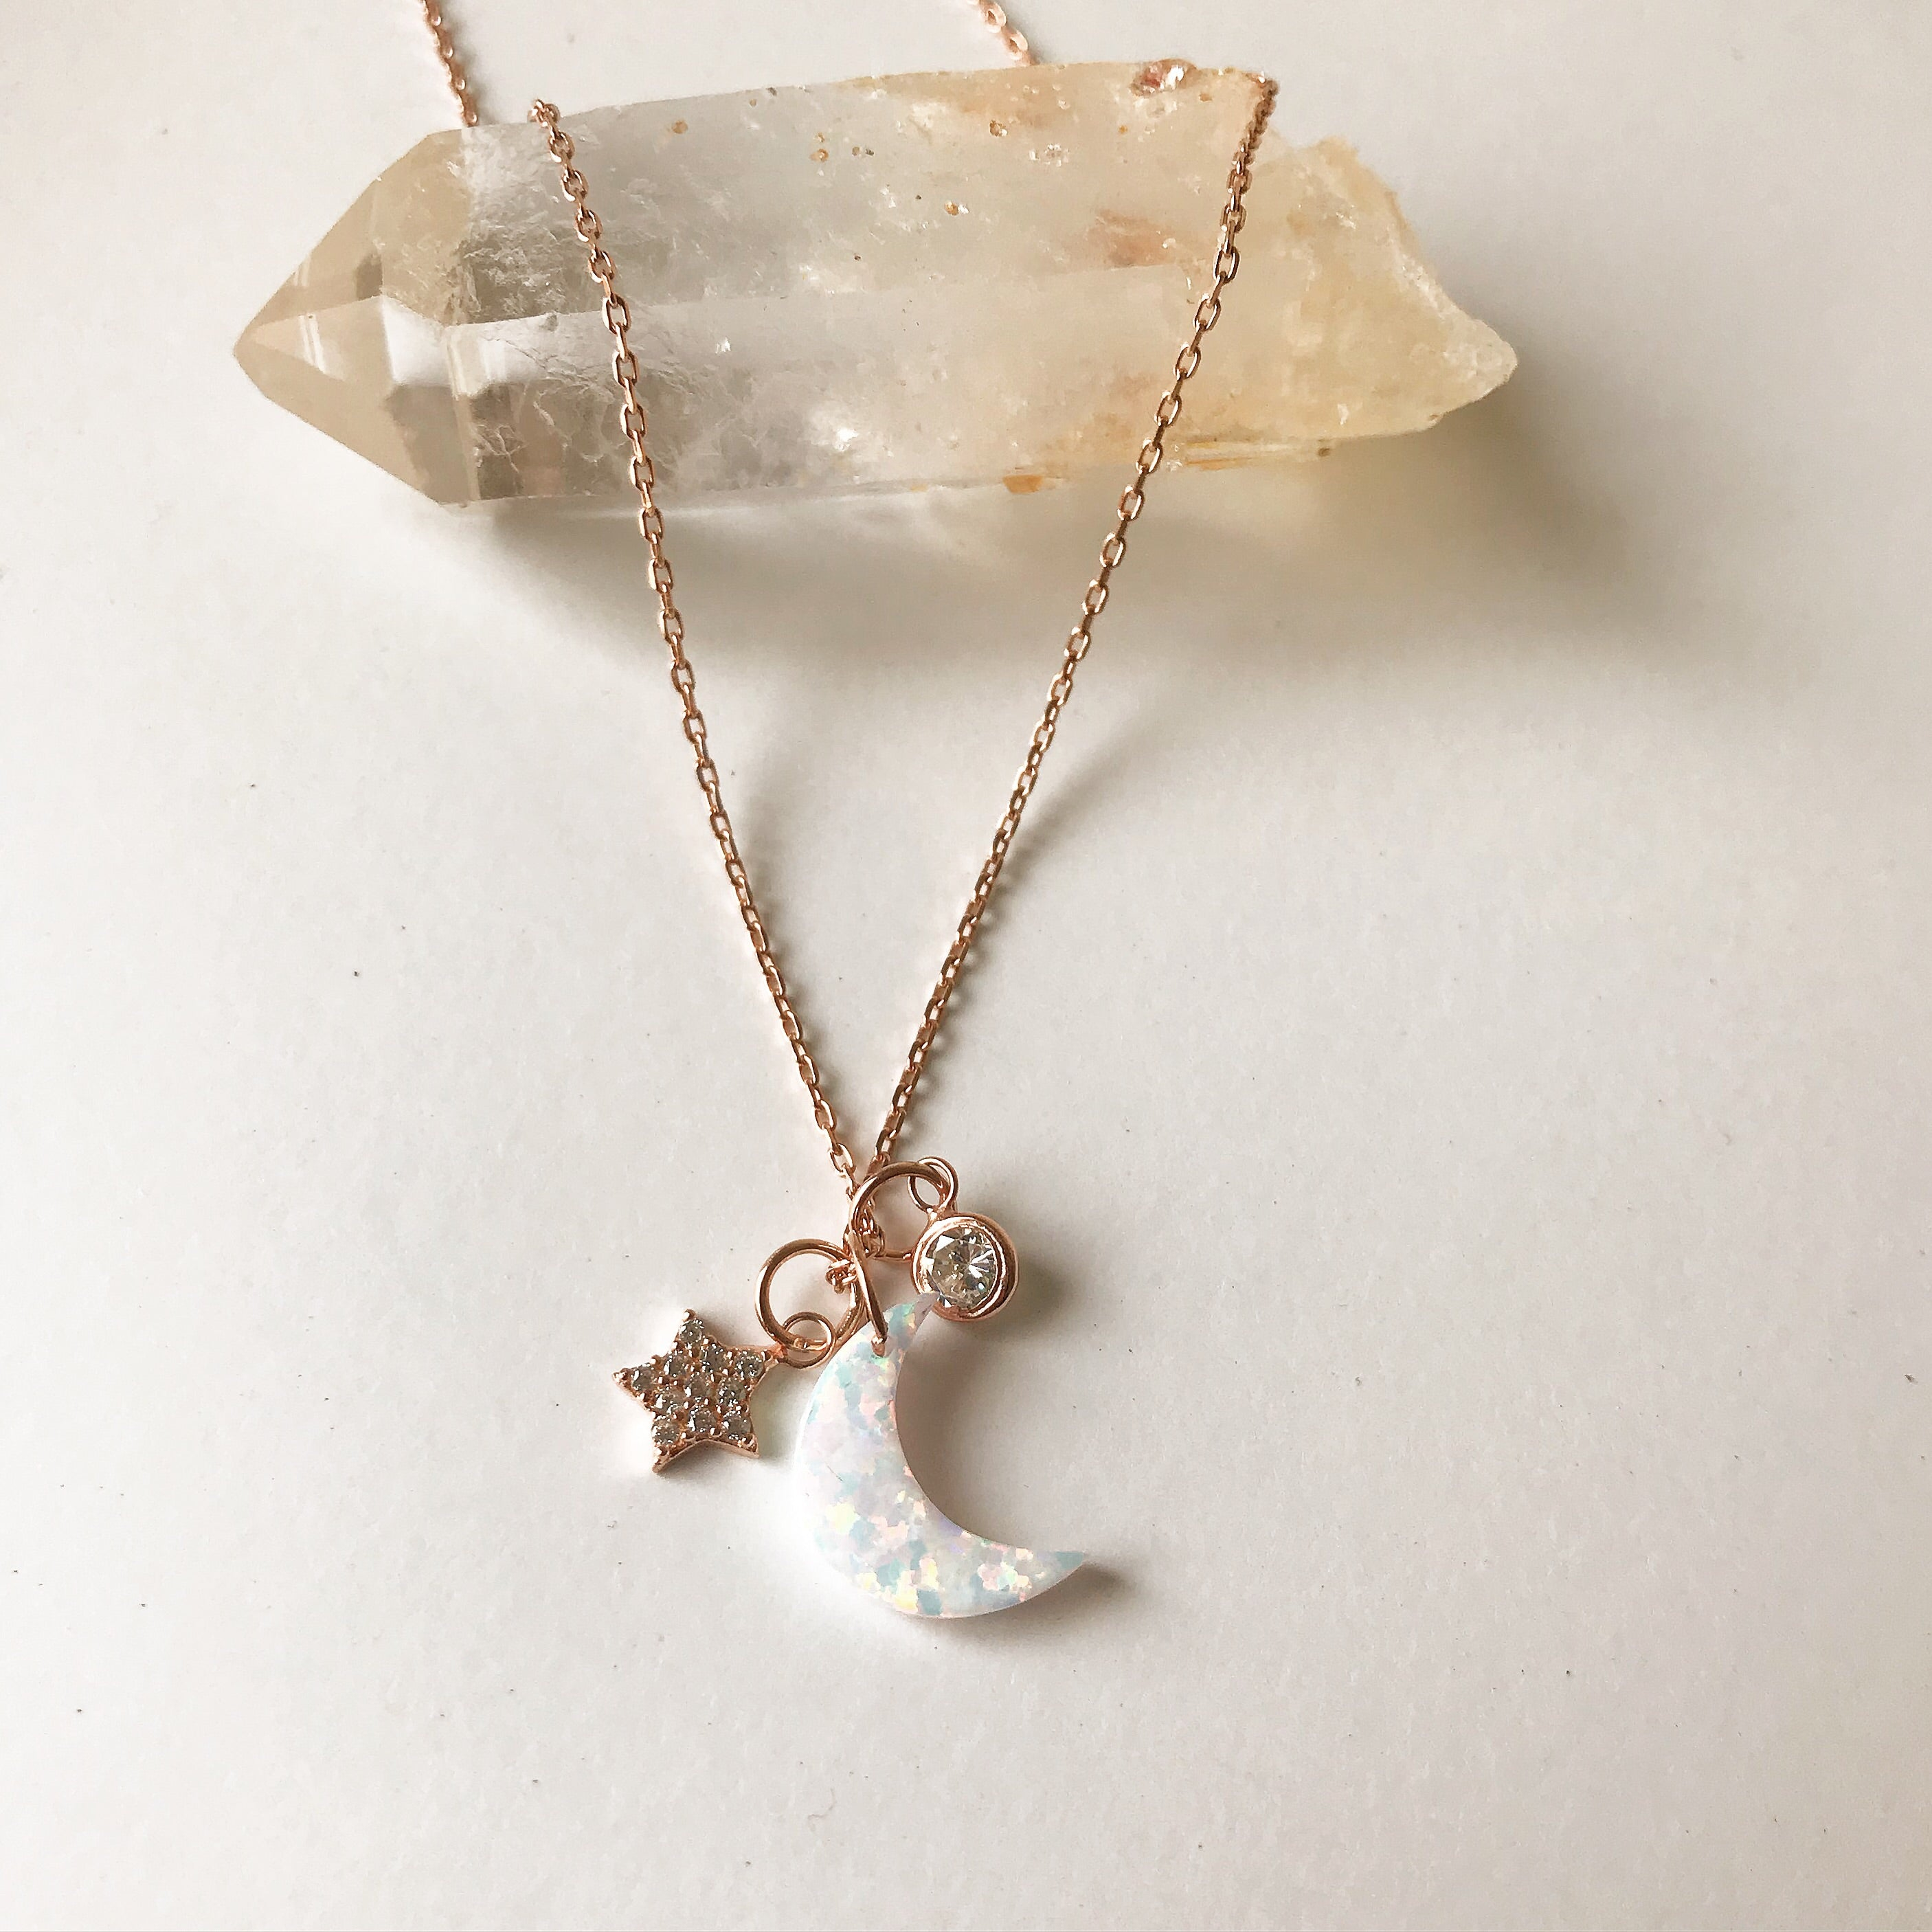 WHITE OPAL MOON WITH TINY CHARMS -Necklaces